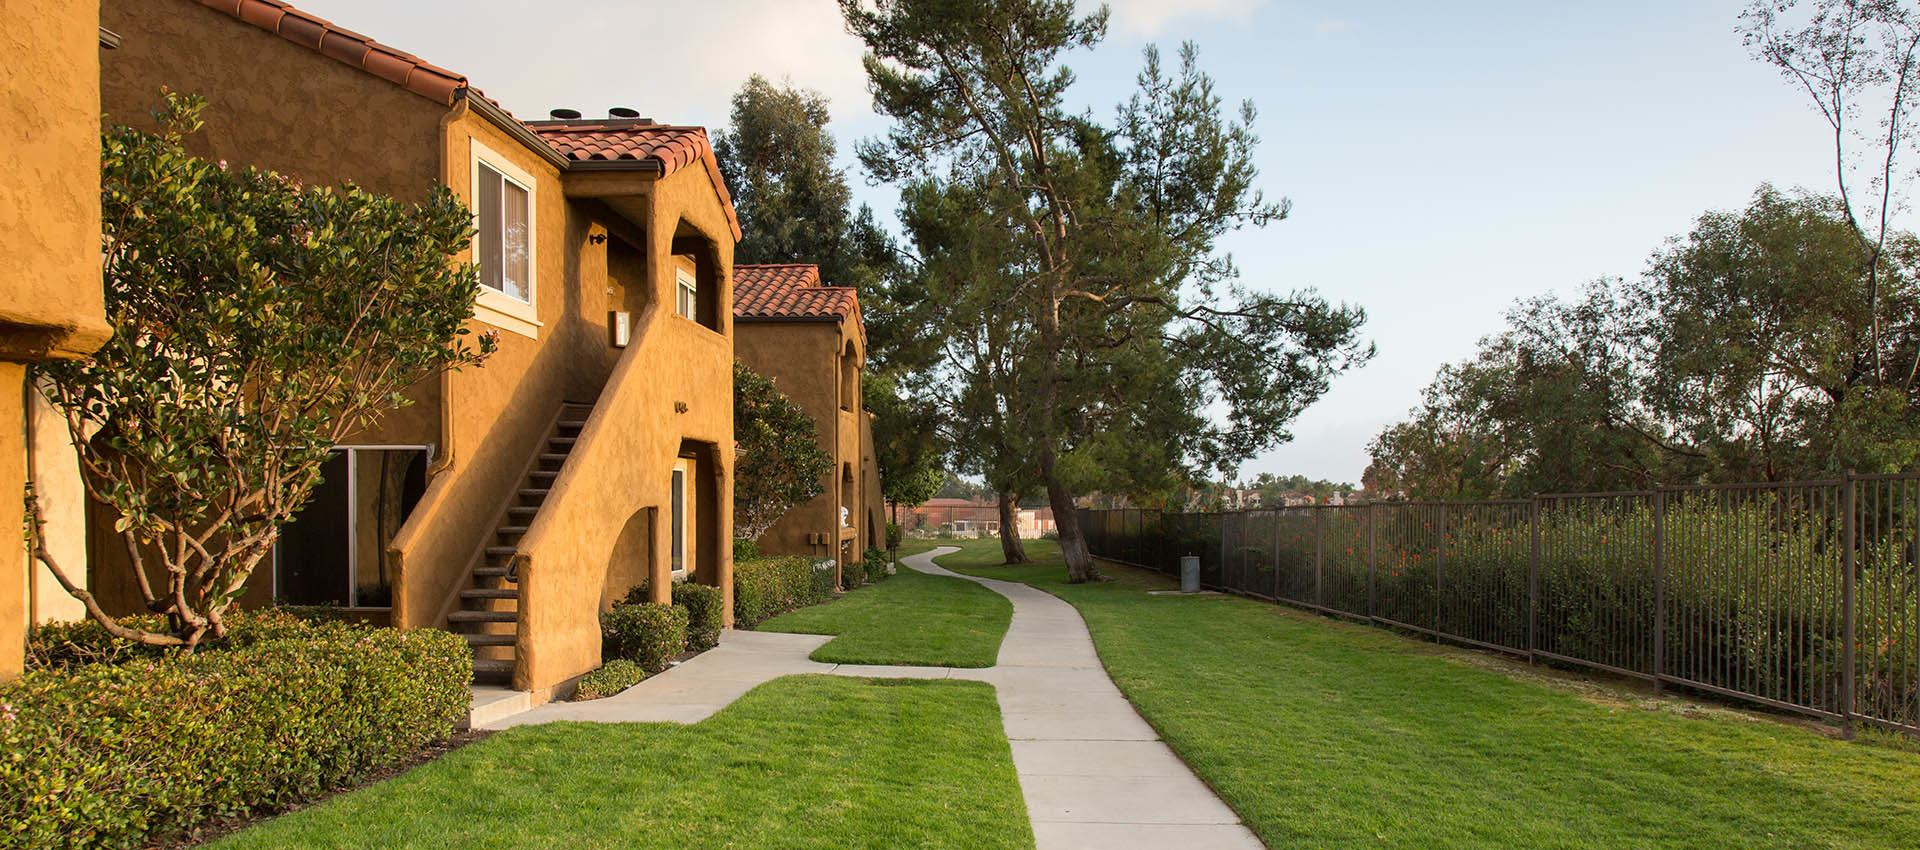 Pathway Thru Grass at Hidden Hills Condominium Rentals in Laguna Niguel, CA